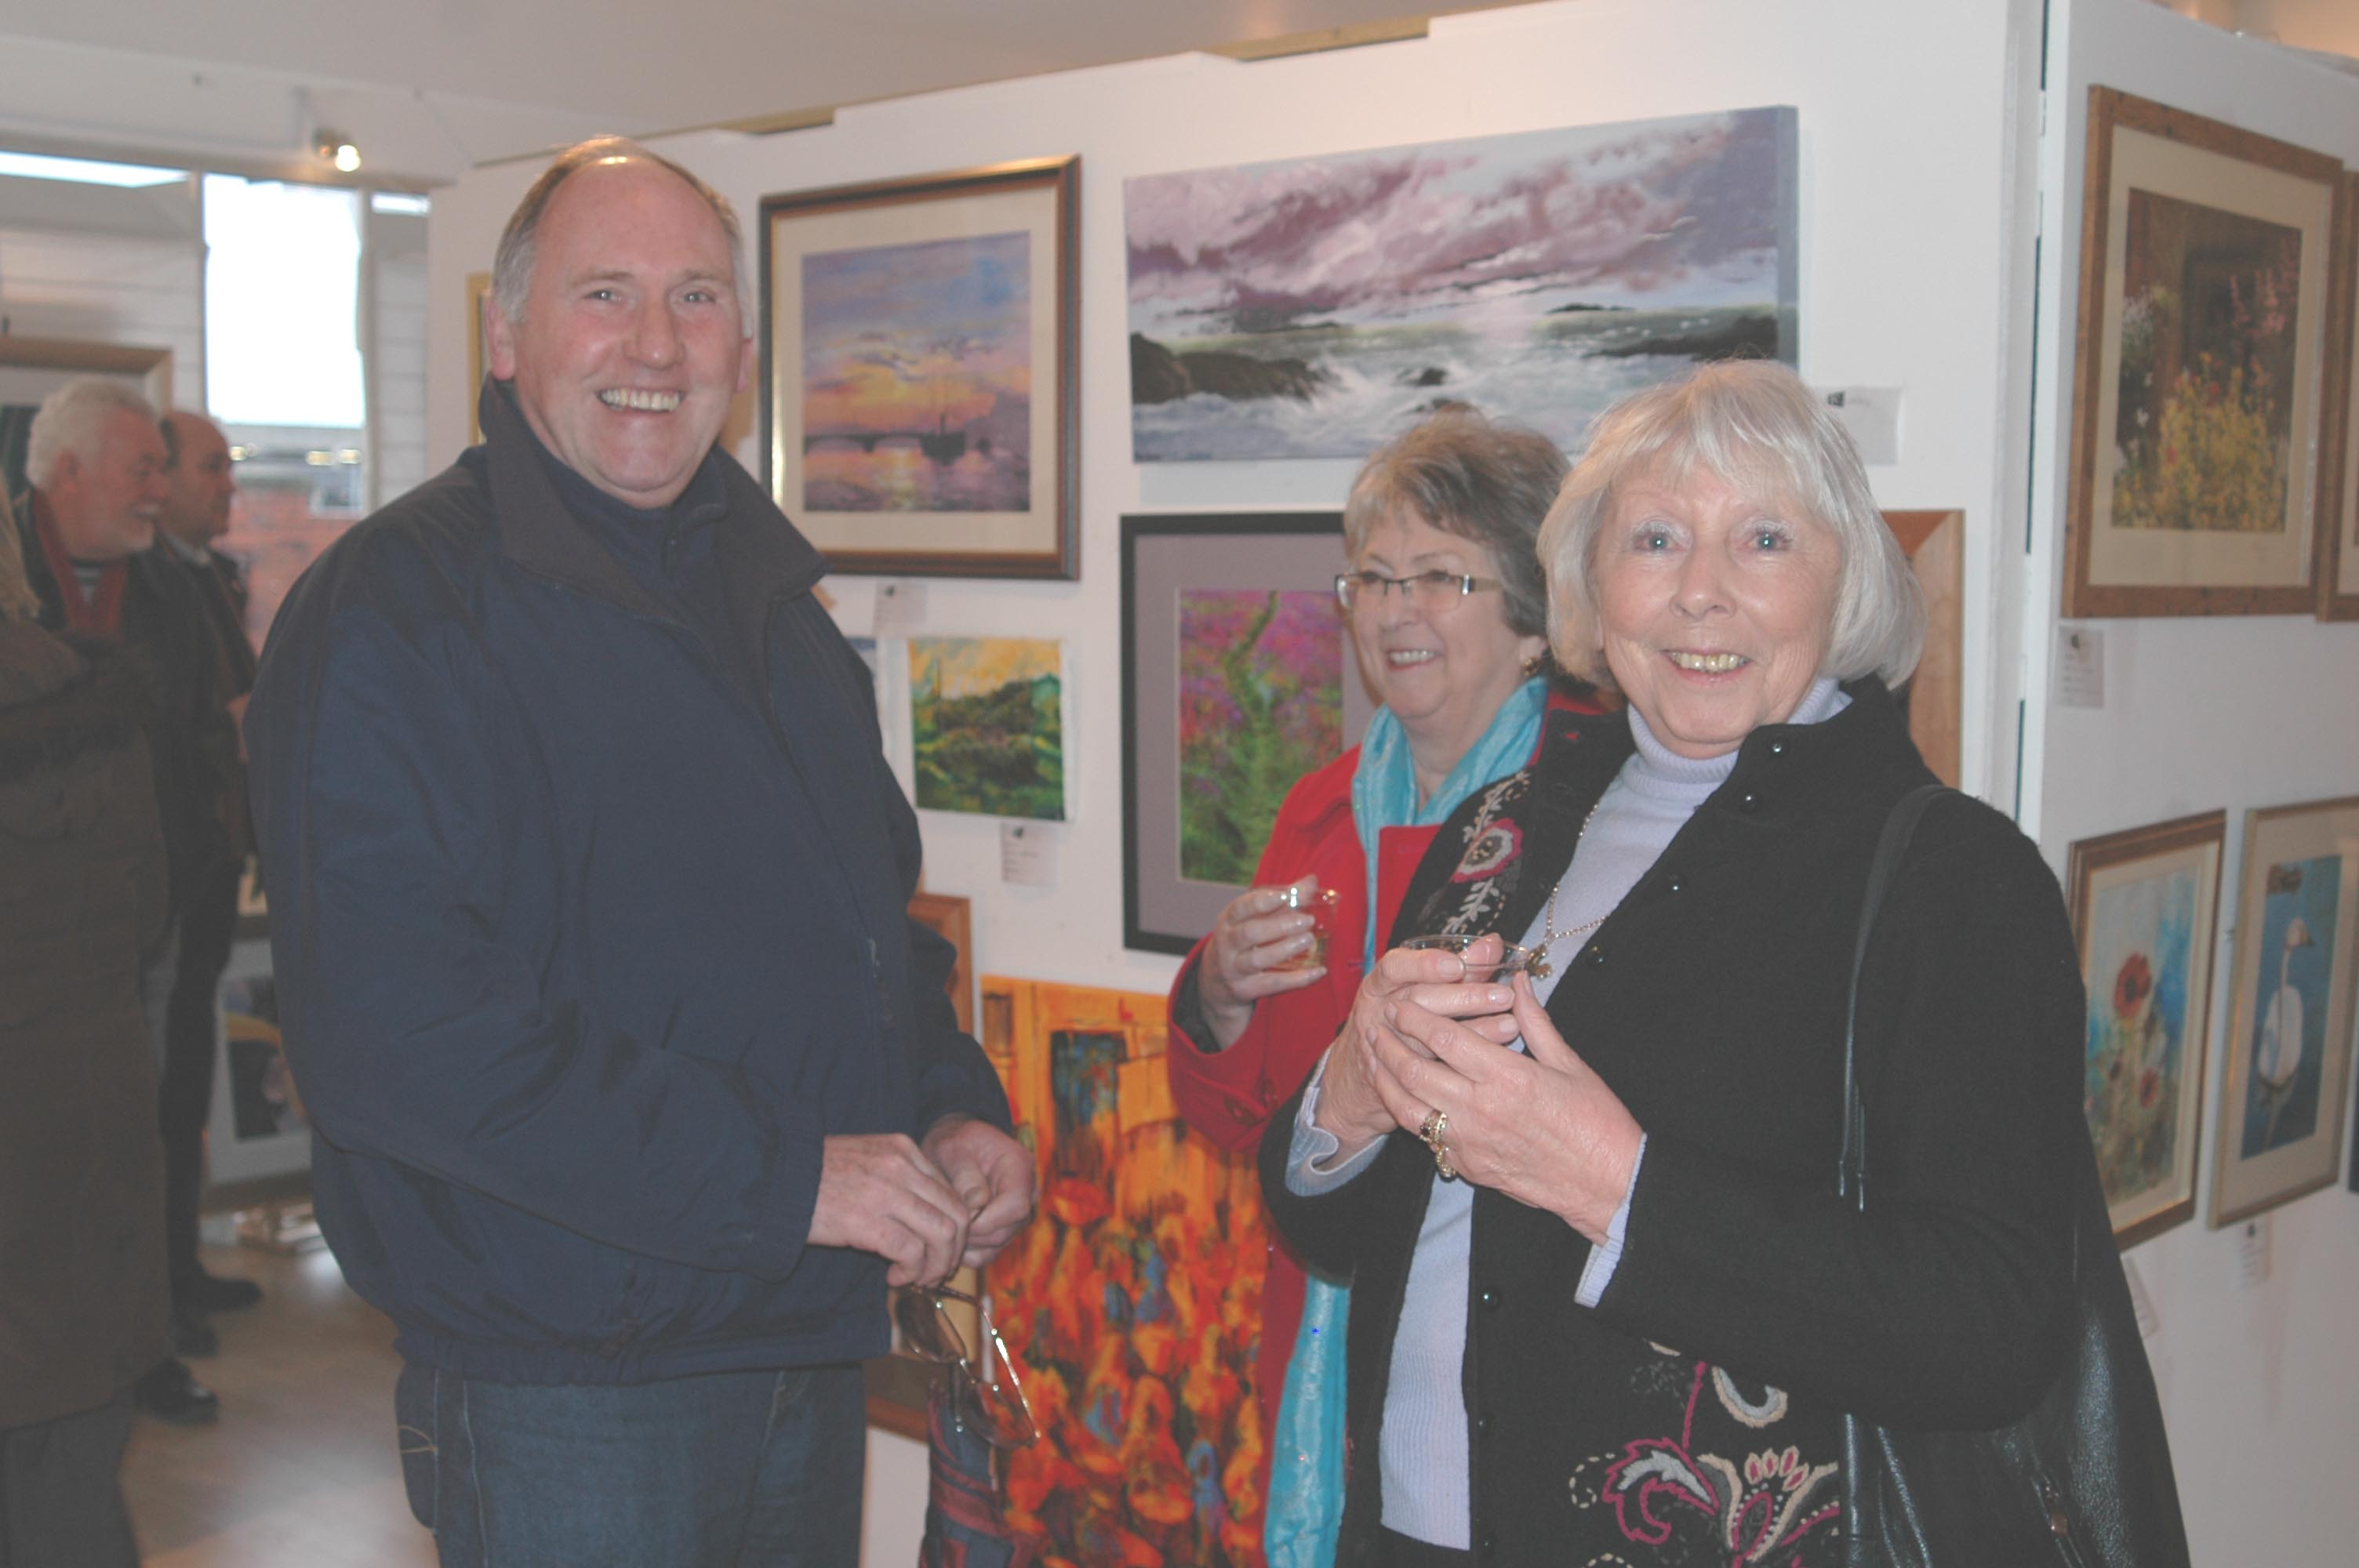 members attending one of their exhibitions